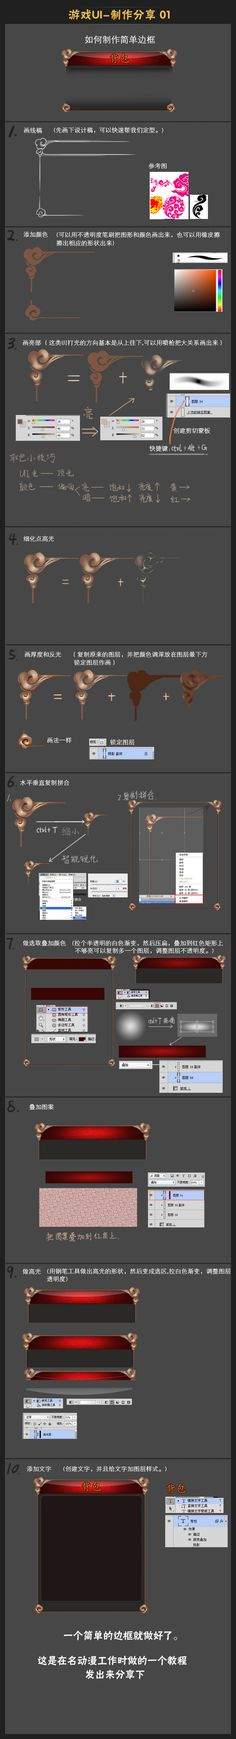 """See """"Game UI production sharing - border of the window to draw"""" ... @ two cake girl collected UI (359 Figure) _ petals UI interaction design"""